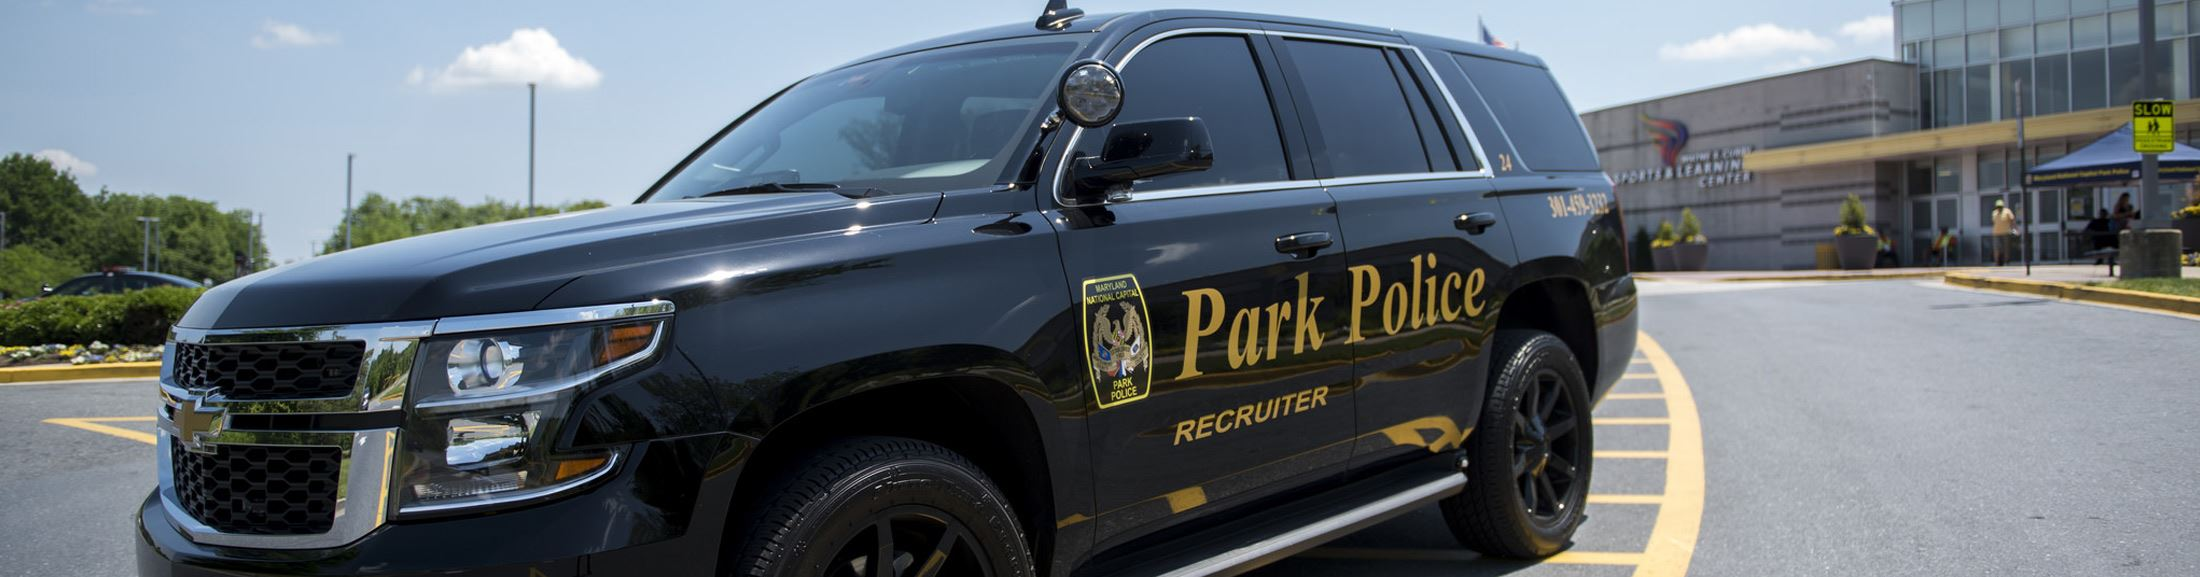 park-police-car-closeup